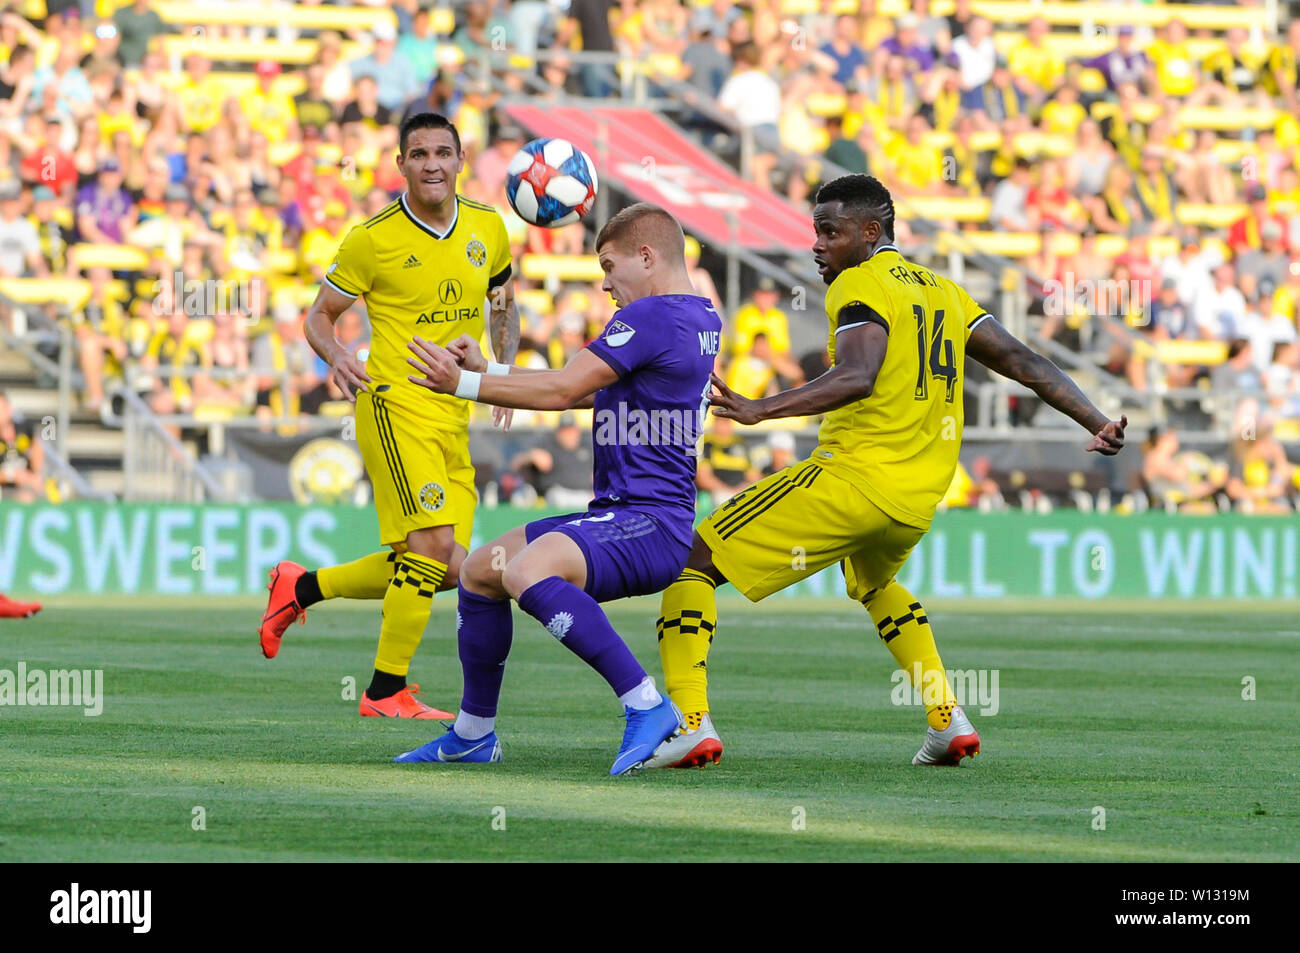 Saturday, June 29, 2019: Orlando City forward Chris Mueller (9) and Columbus Crew SC defender Waylon Francis (14) in the first half of the match between Orlando City and Columbus Crew SC at MAPFRE Stadium, in Columbus OH. Mandatory Photo Credit: Dorn Byg/Cal Sport Media. Orlando City 1 - Columbus Crew SC 0 after the first half - Stock Image